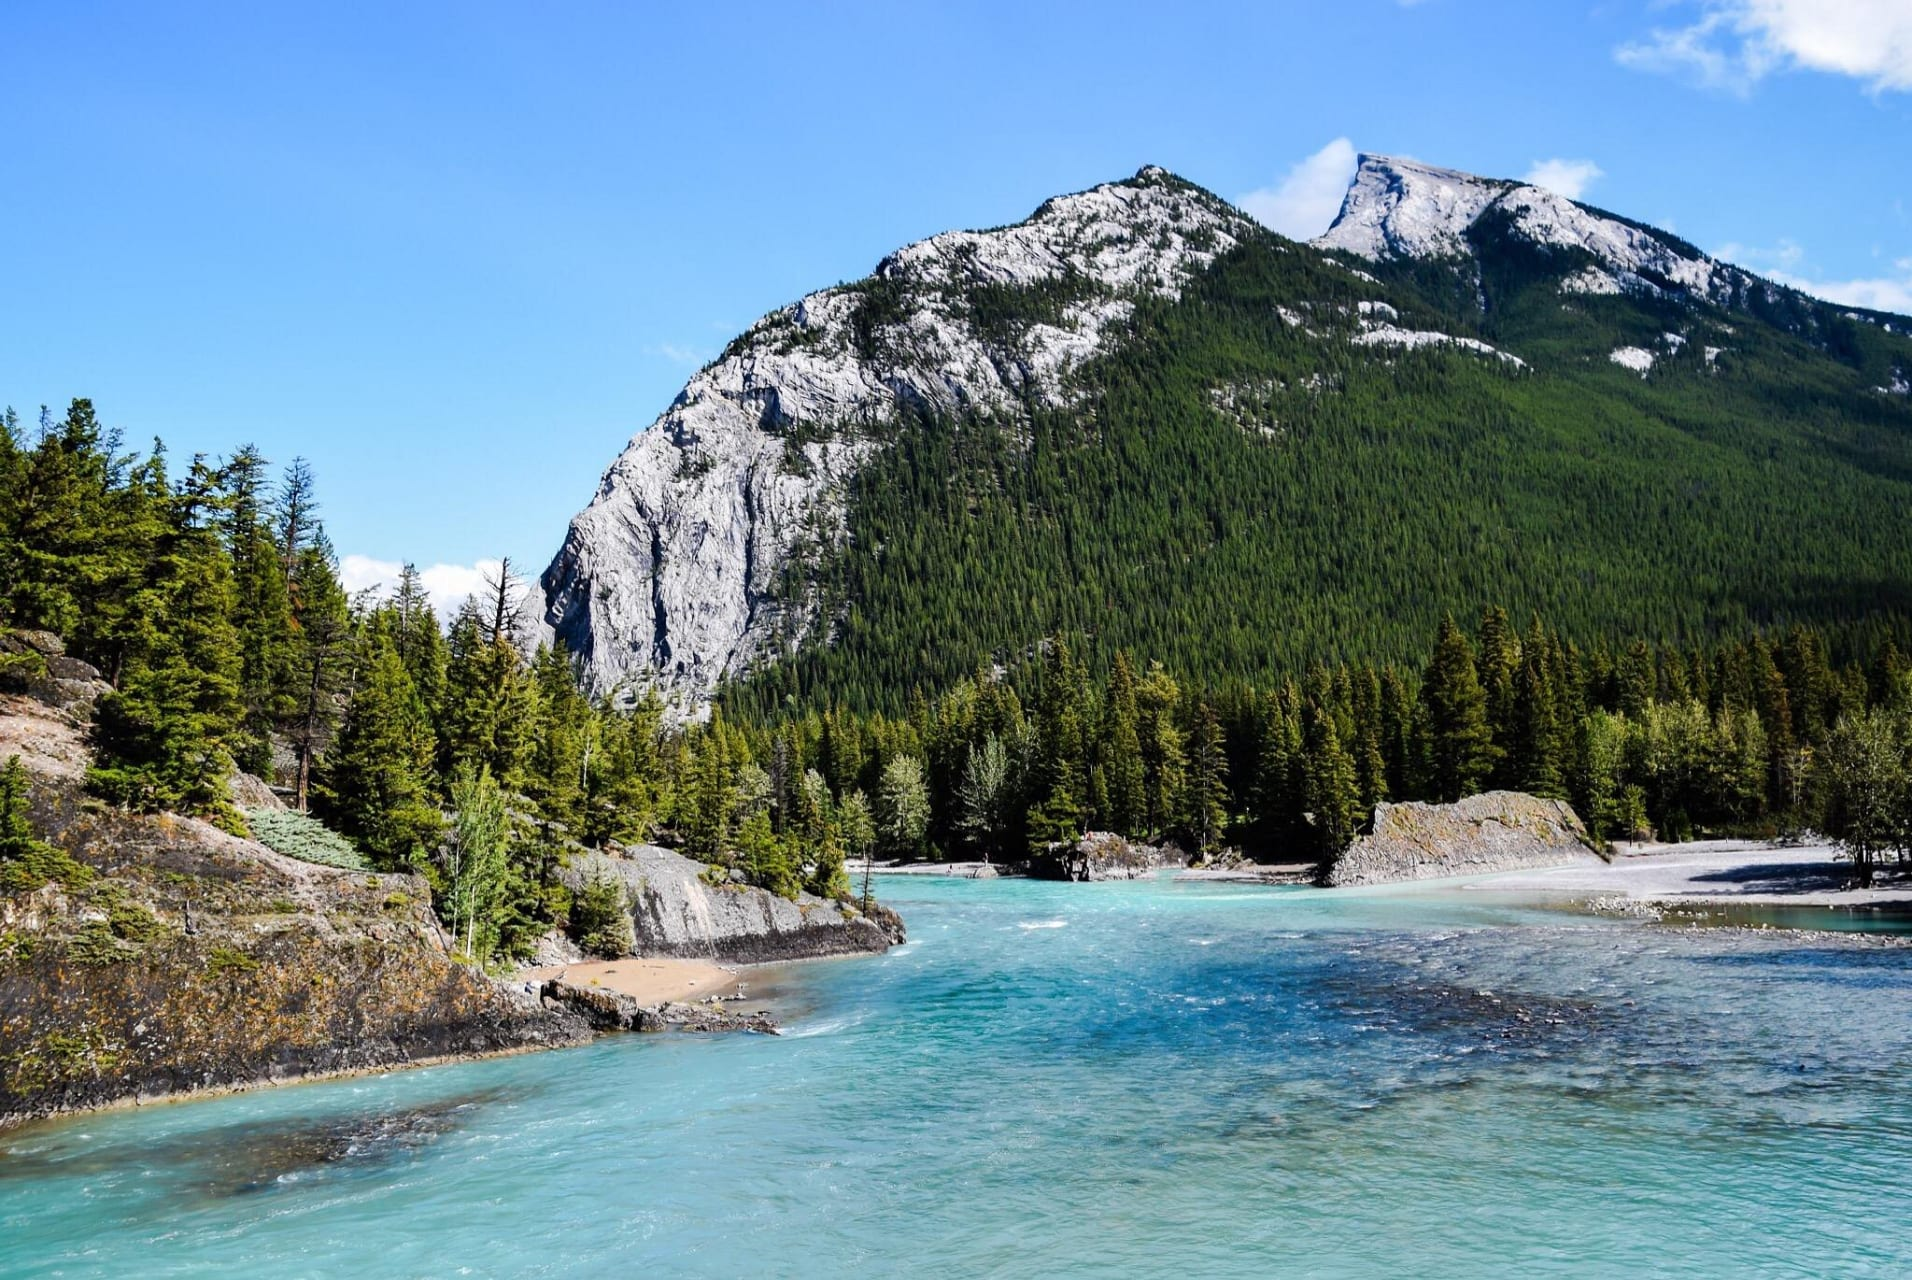 Banff - The Unique Shade of Blue of the Bow River